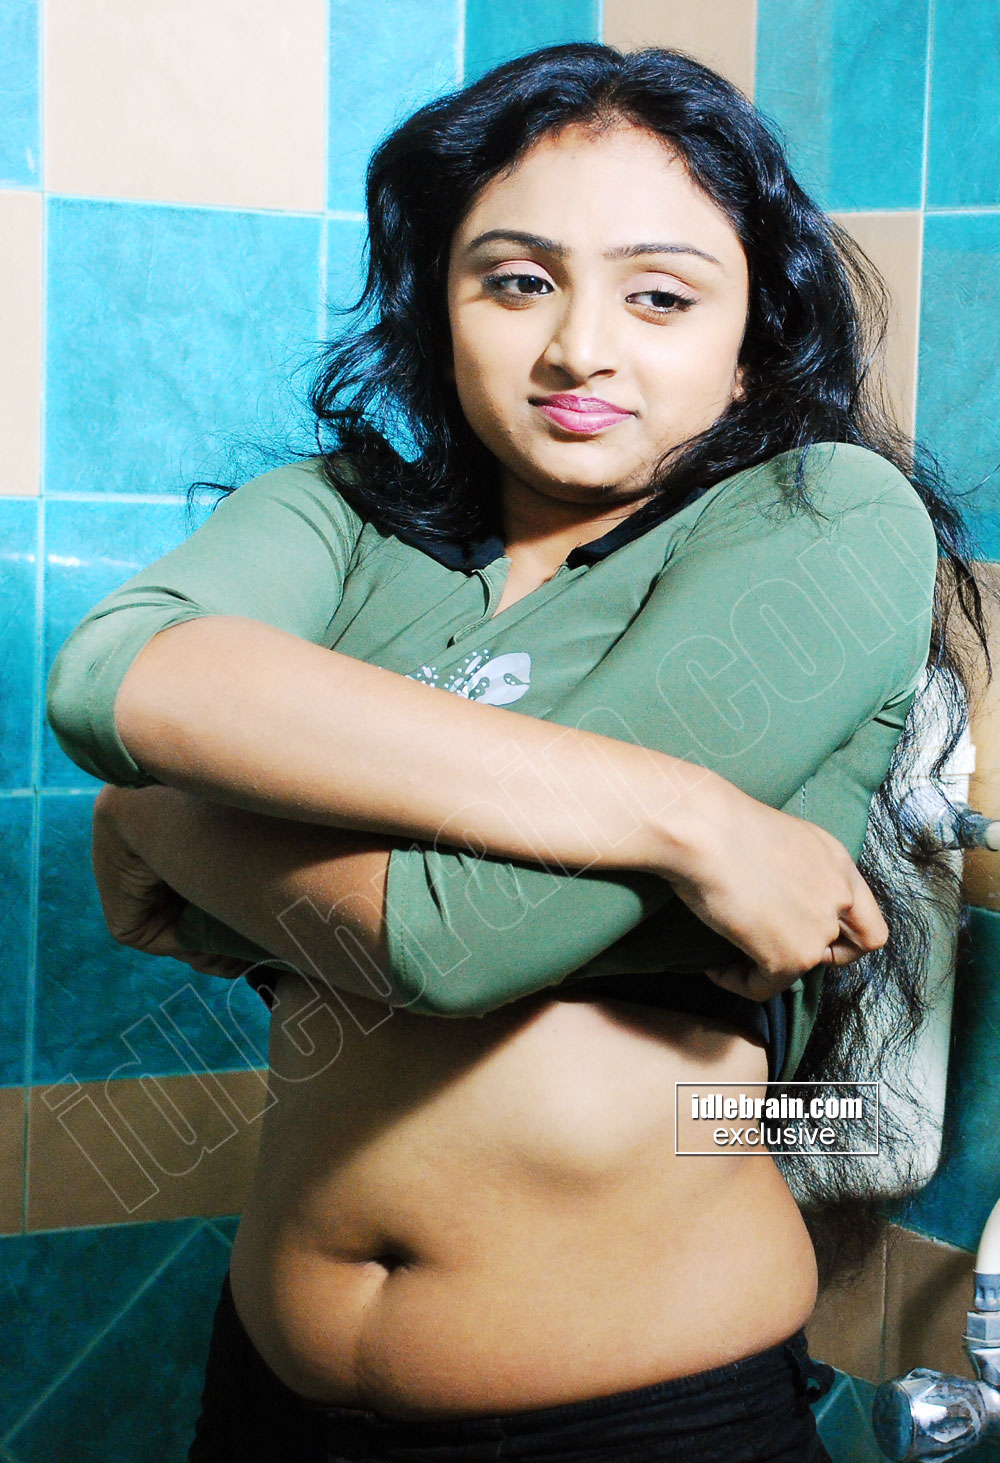 actress navel tamil vahida telugu shirt showing removing film jeans anagarigam movie malayalam serial south actresses latest unseen spicy sparkling